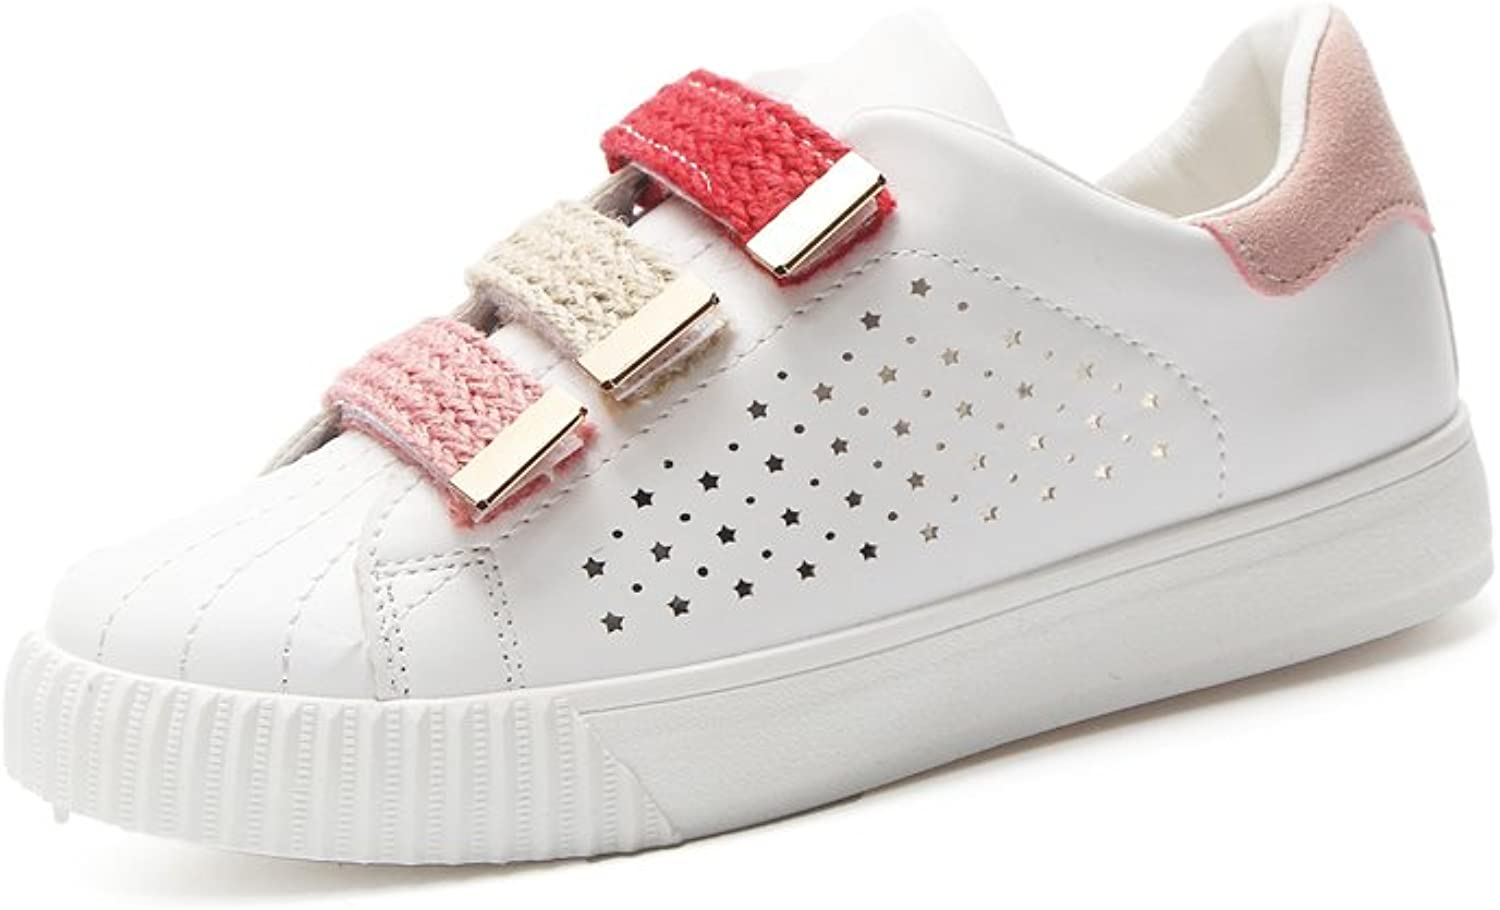 Exing Womens's shoes Velcro Small White shoes,Breathable New Academy shoes,Fashion Flat Ladies Deck shoes